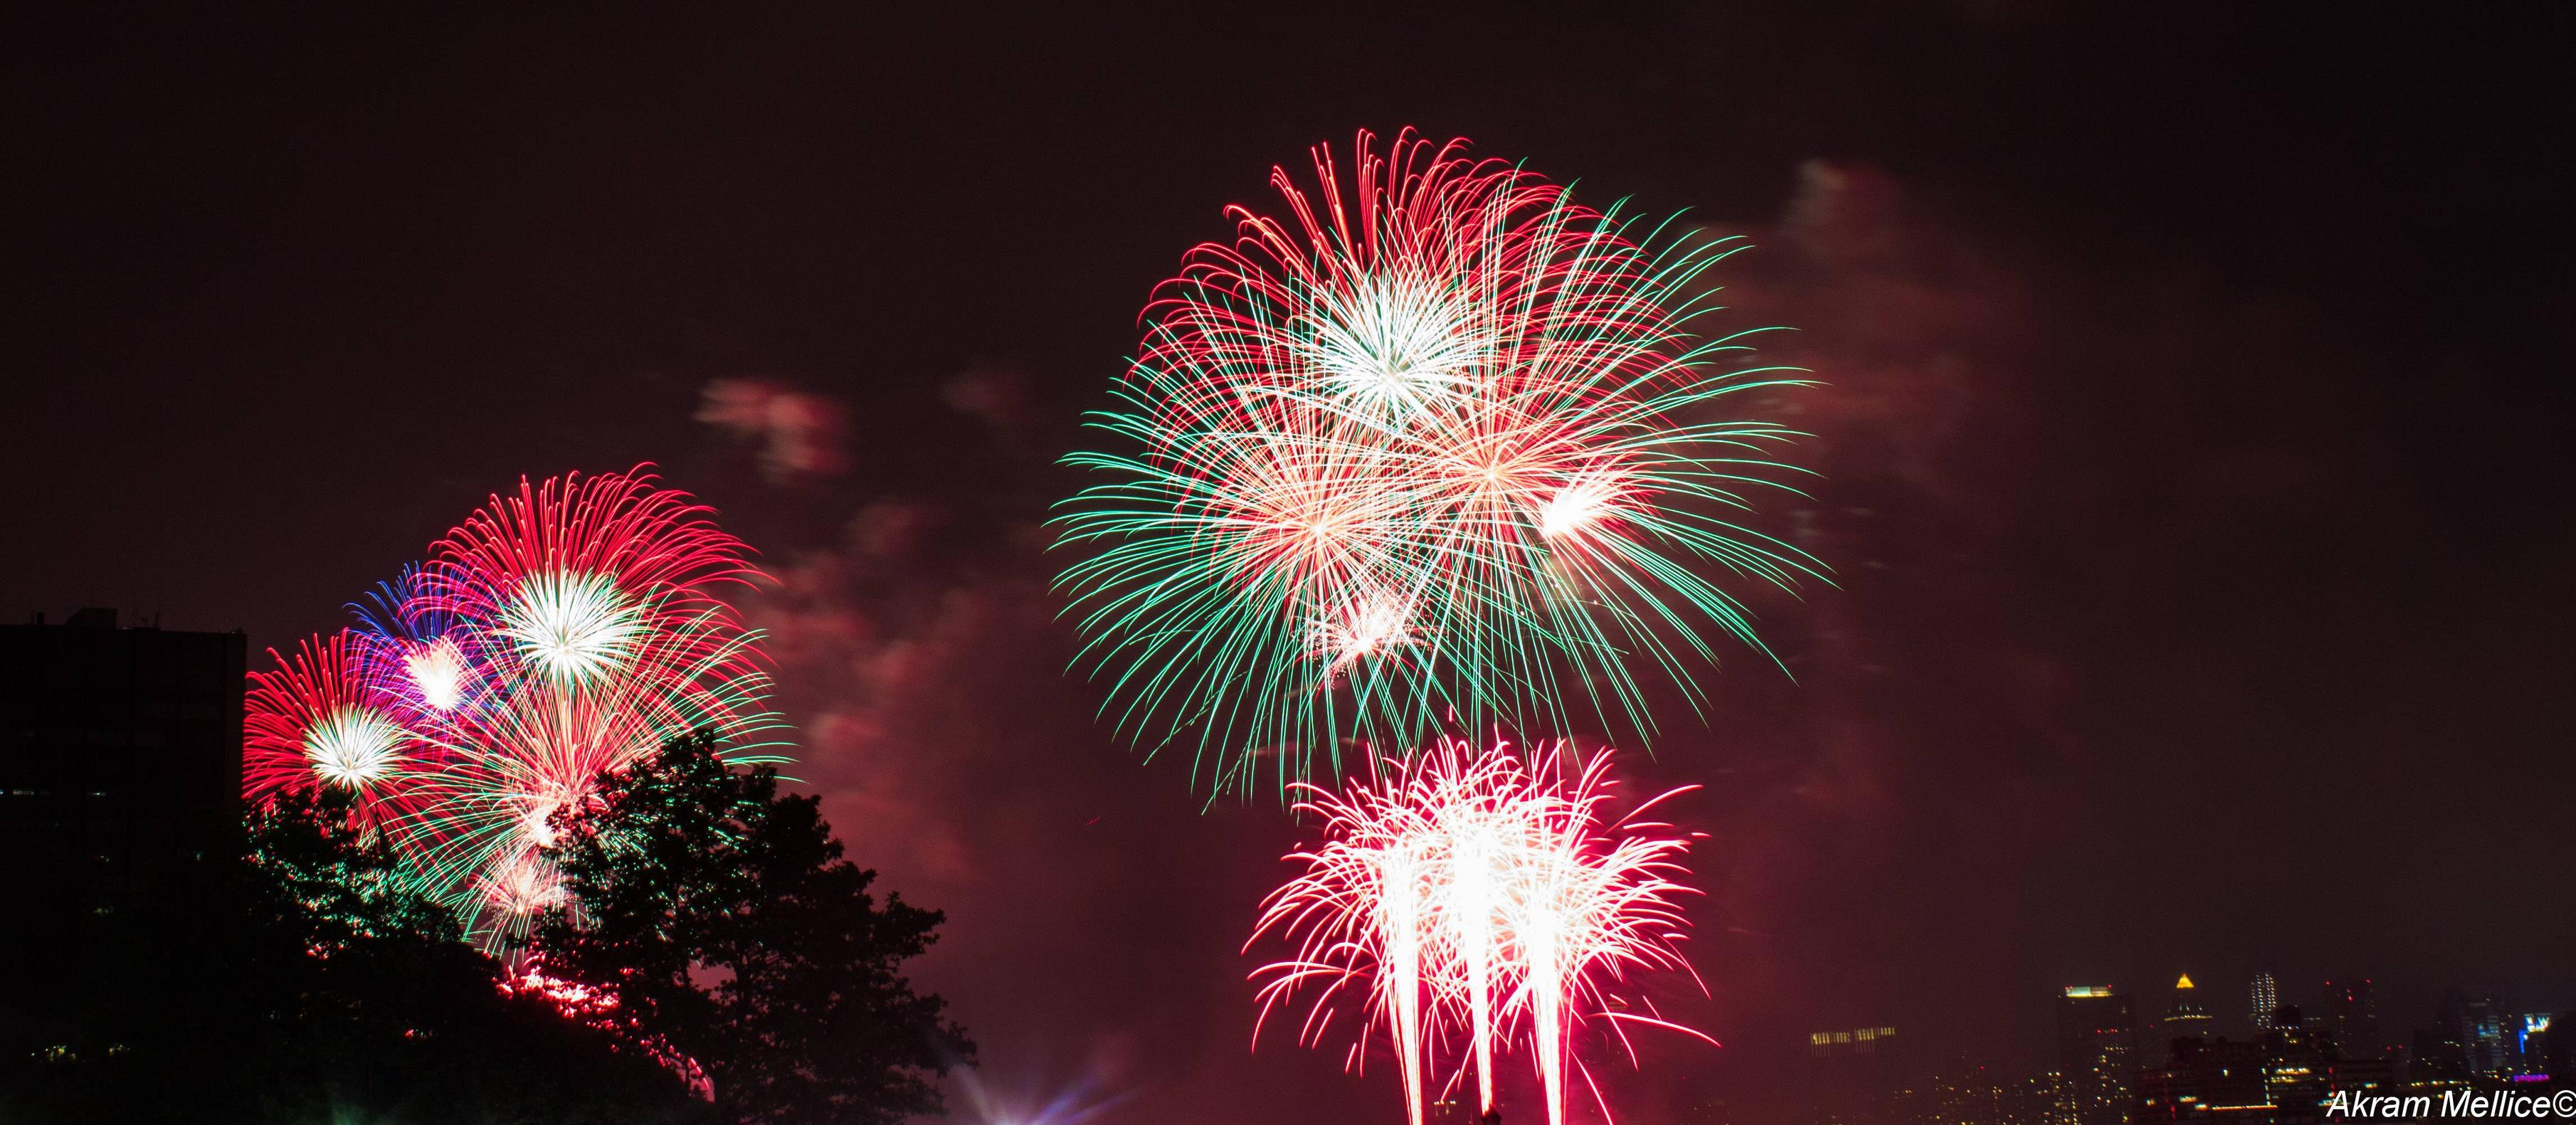 photoshop - How to get rid of smoke in this fireworks photo in post ...